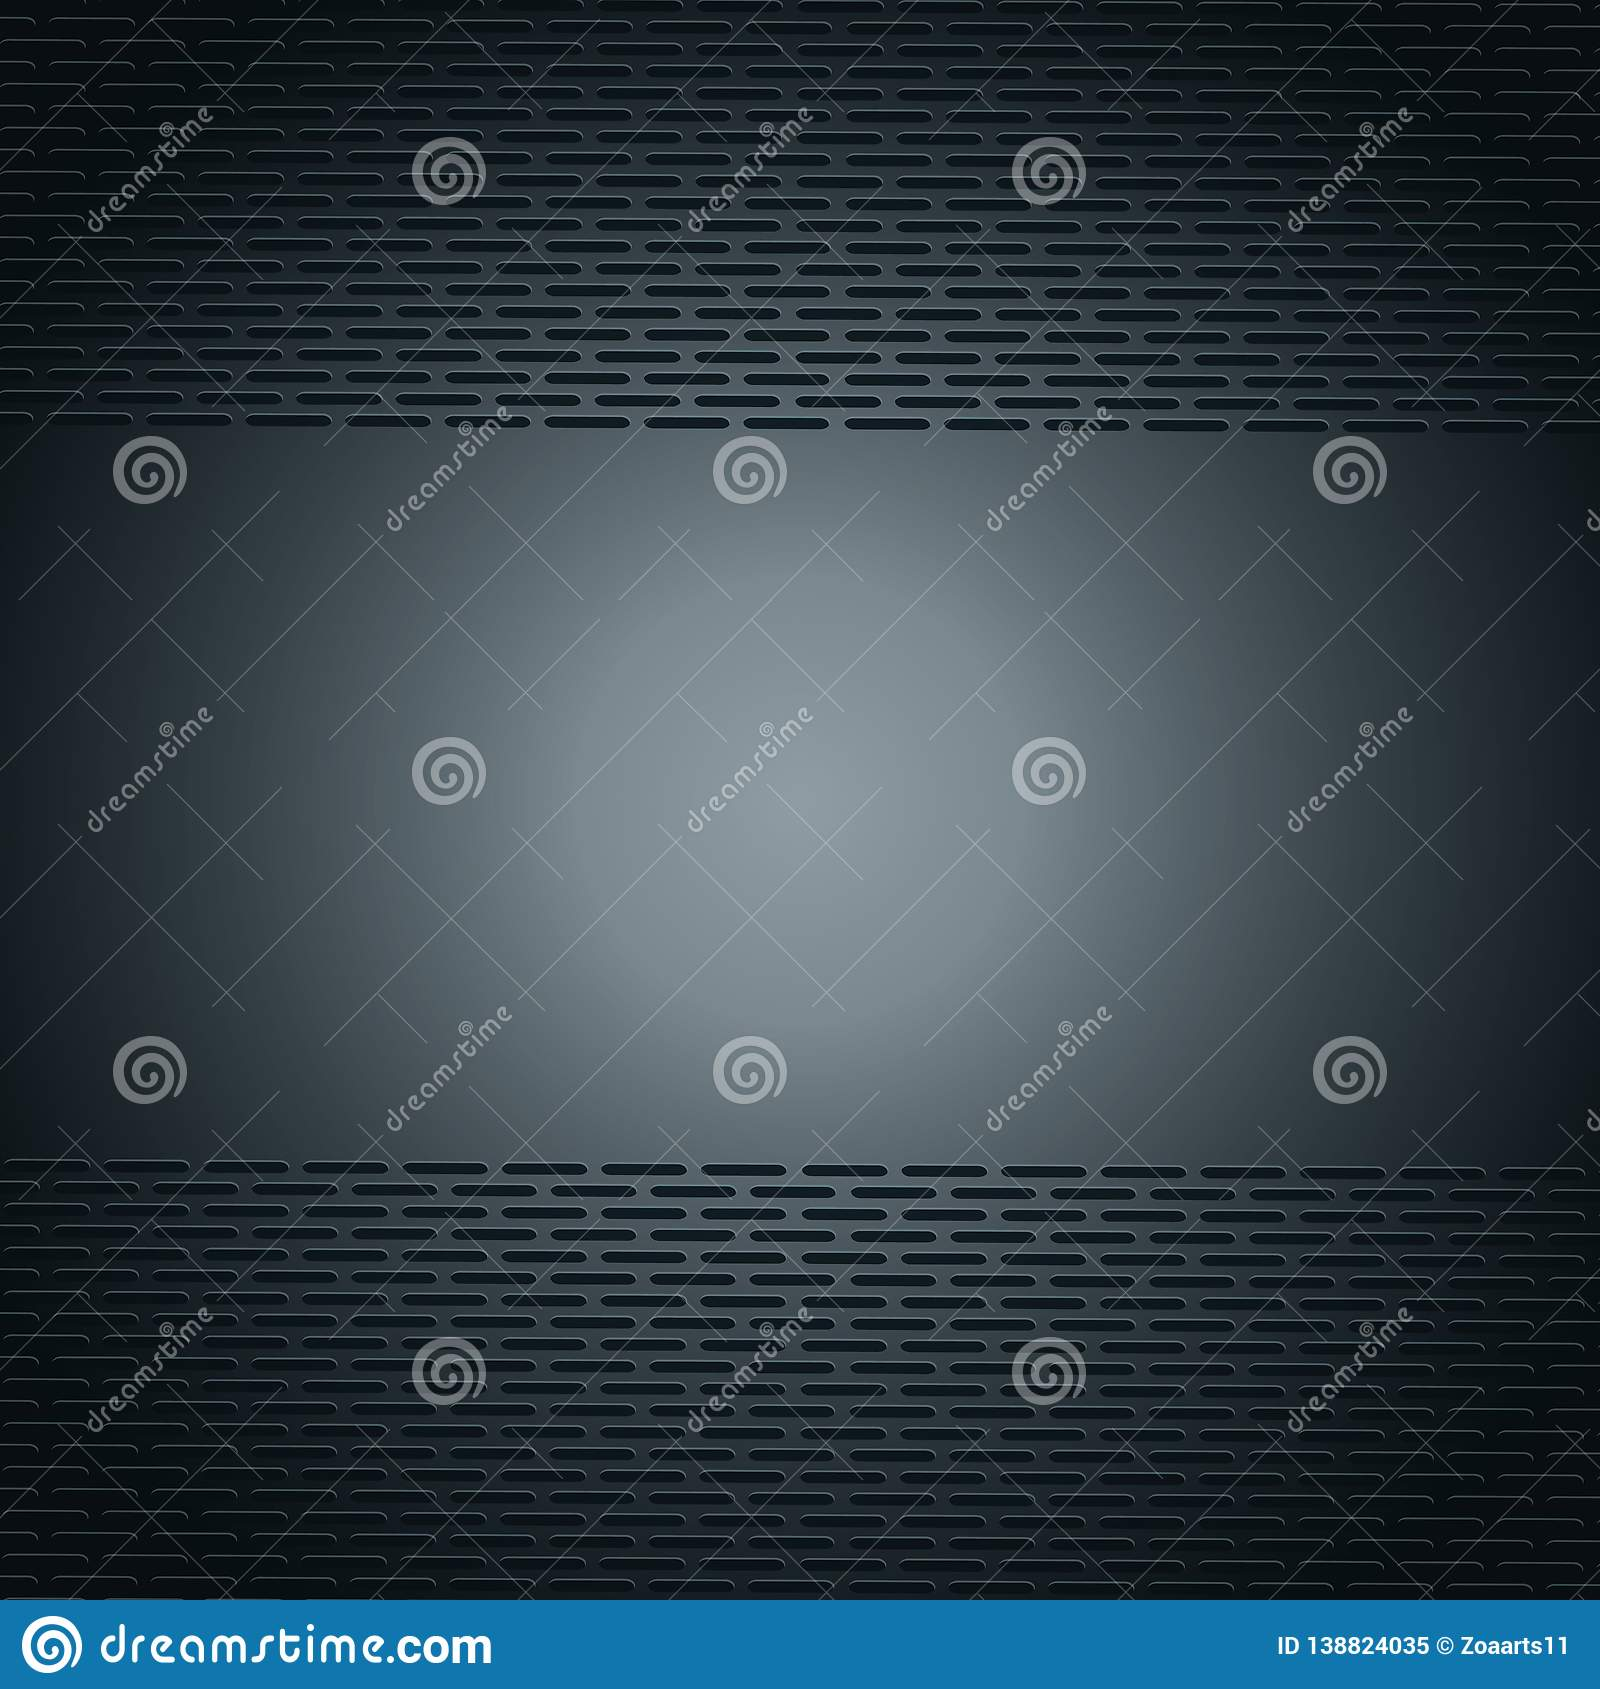 Vector illustration cool metallic stainless steel wallpaper - abstract black metal grid geometric polygons background